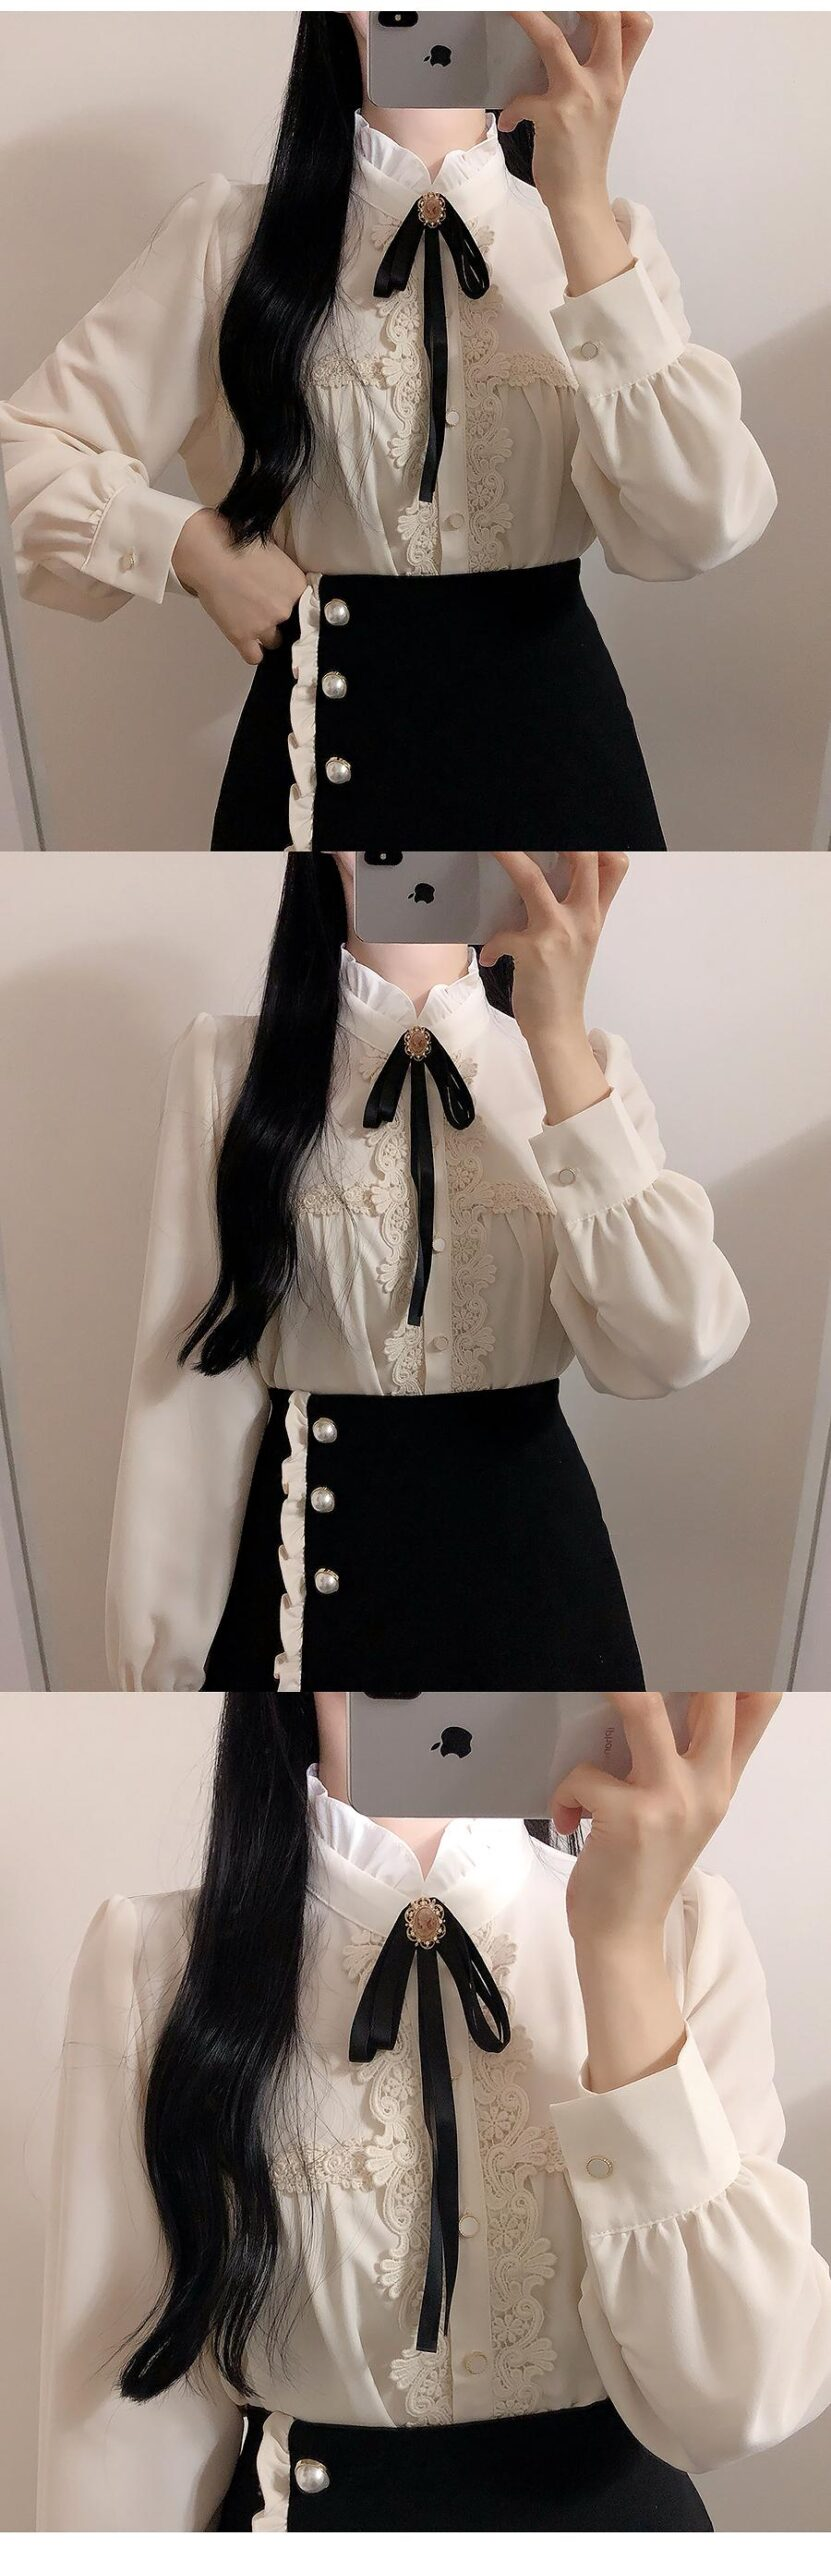 2020 Spring New Design Bow Tie Tops Women Long Sleeve Cute Sweet Korea Japanese Style White Lace Button Shirts Blouse Pink 12322